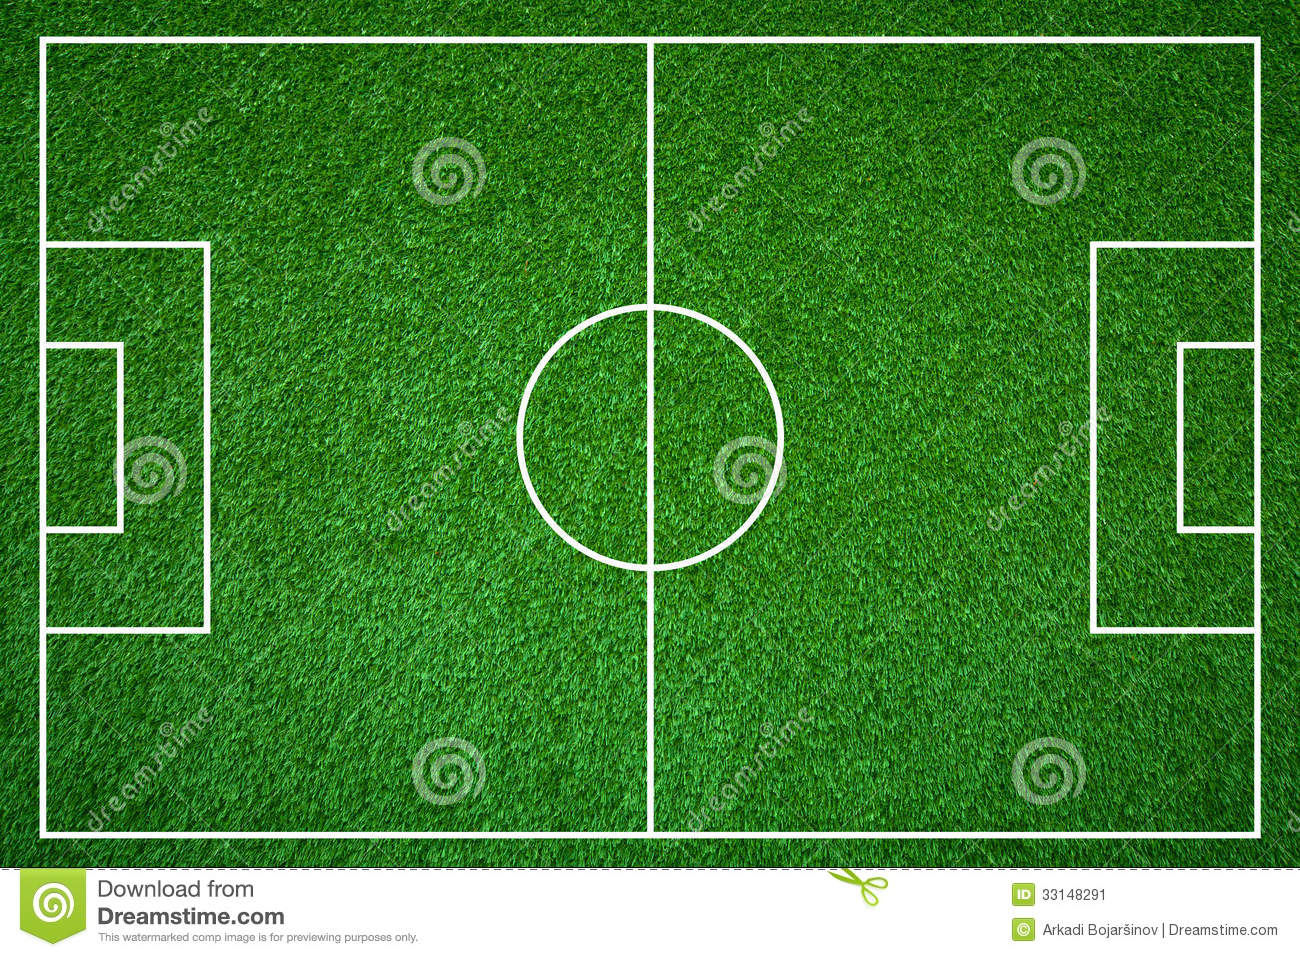 13069a684 Soccer field stock illustration. Illustration of competition - 33148291